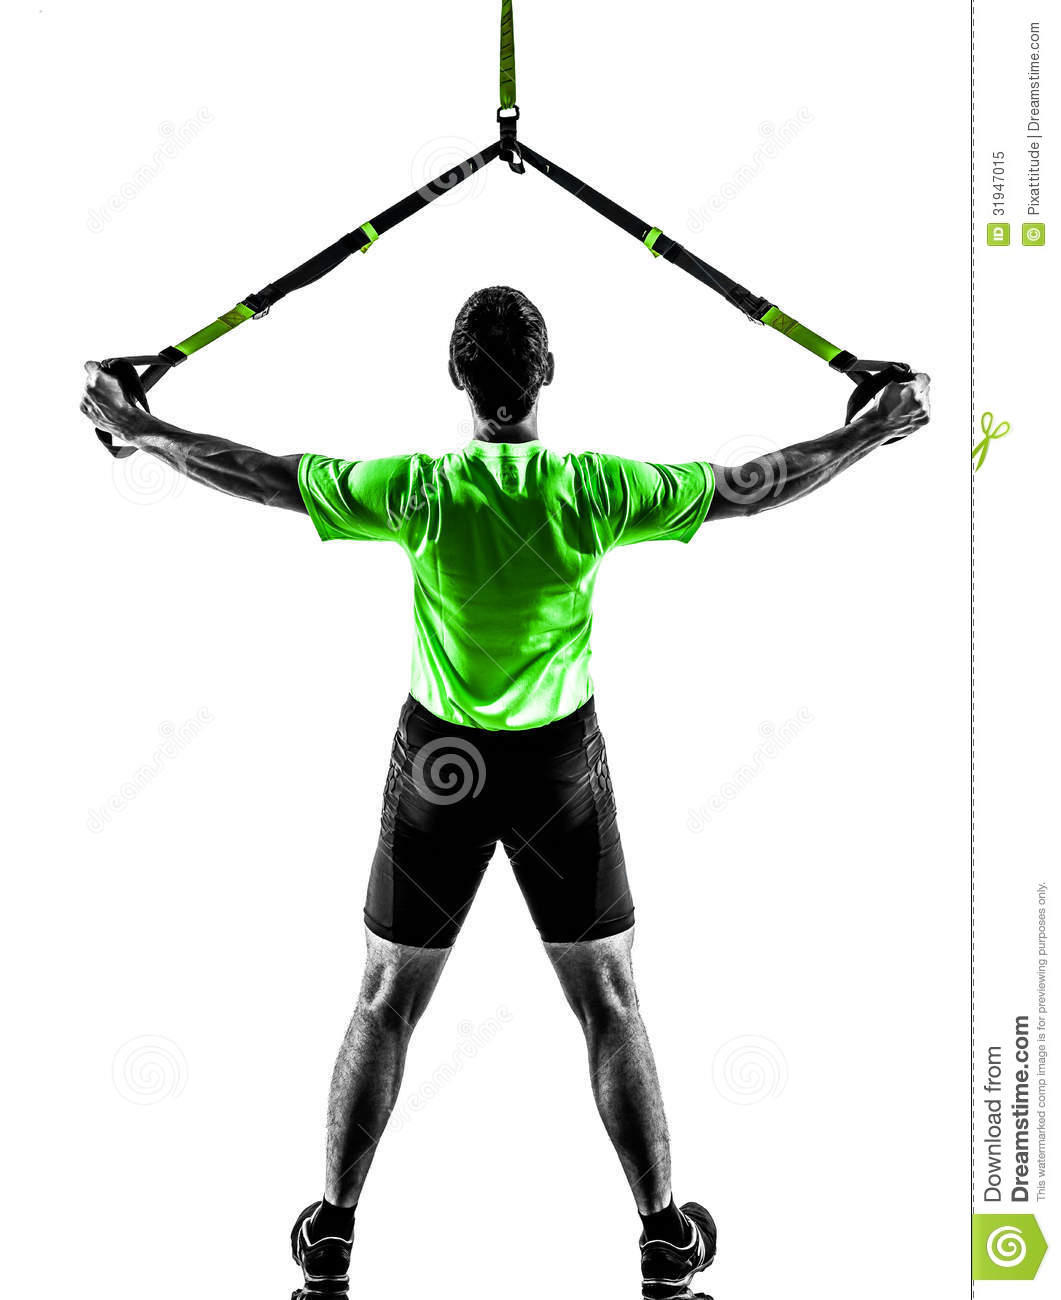 Man Exercising Suspension Training Trx Silhouette Royalty Free.